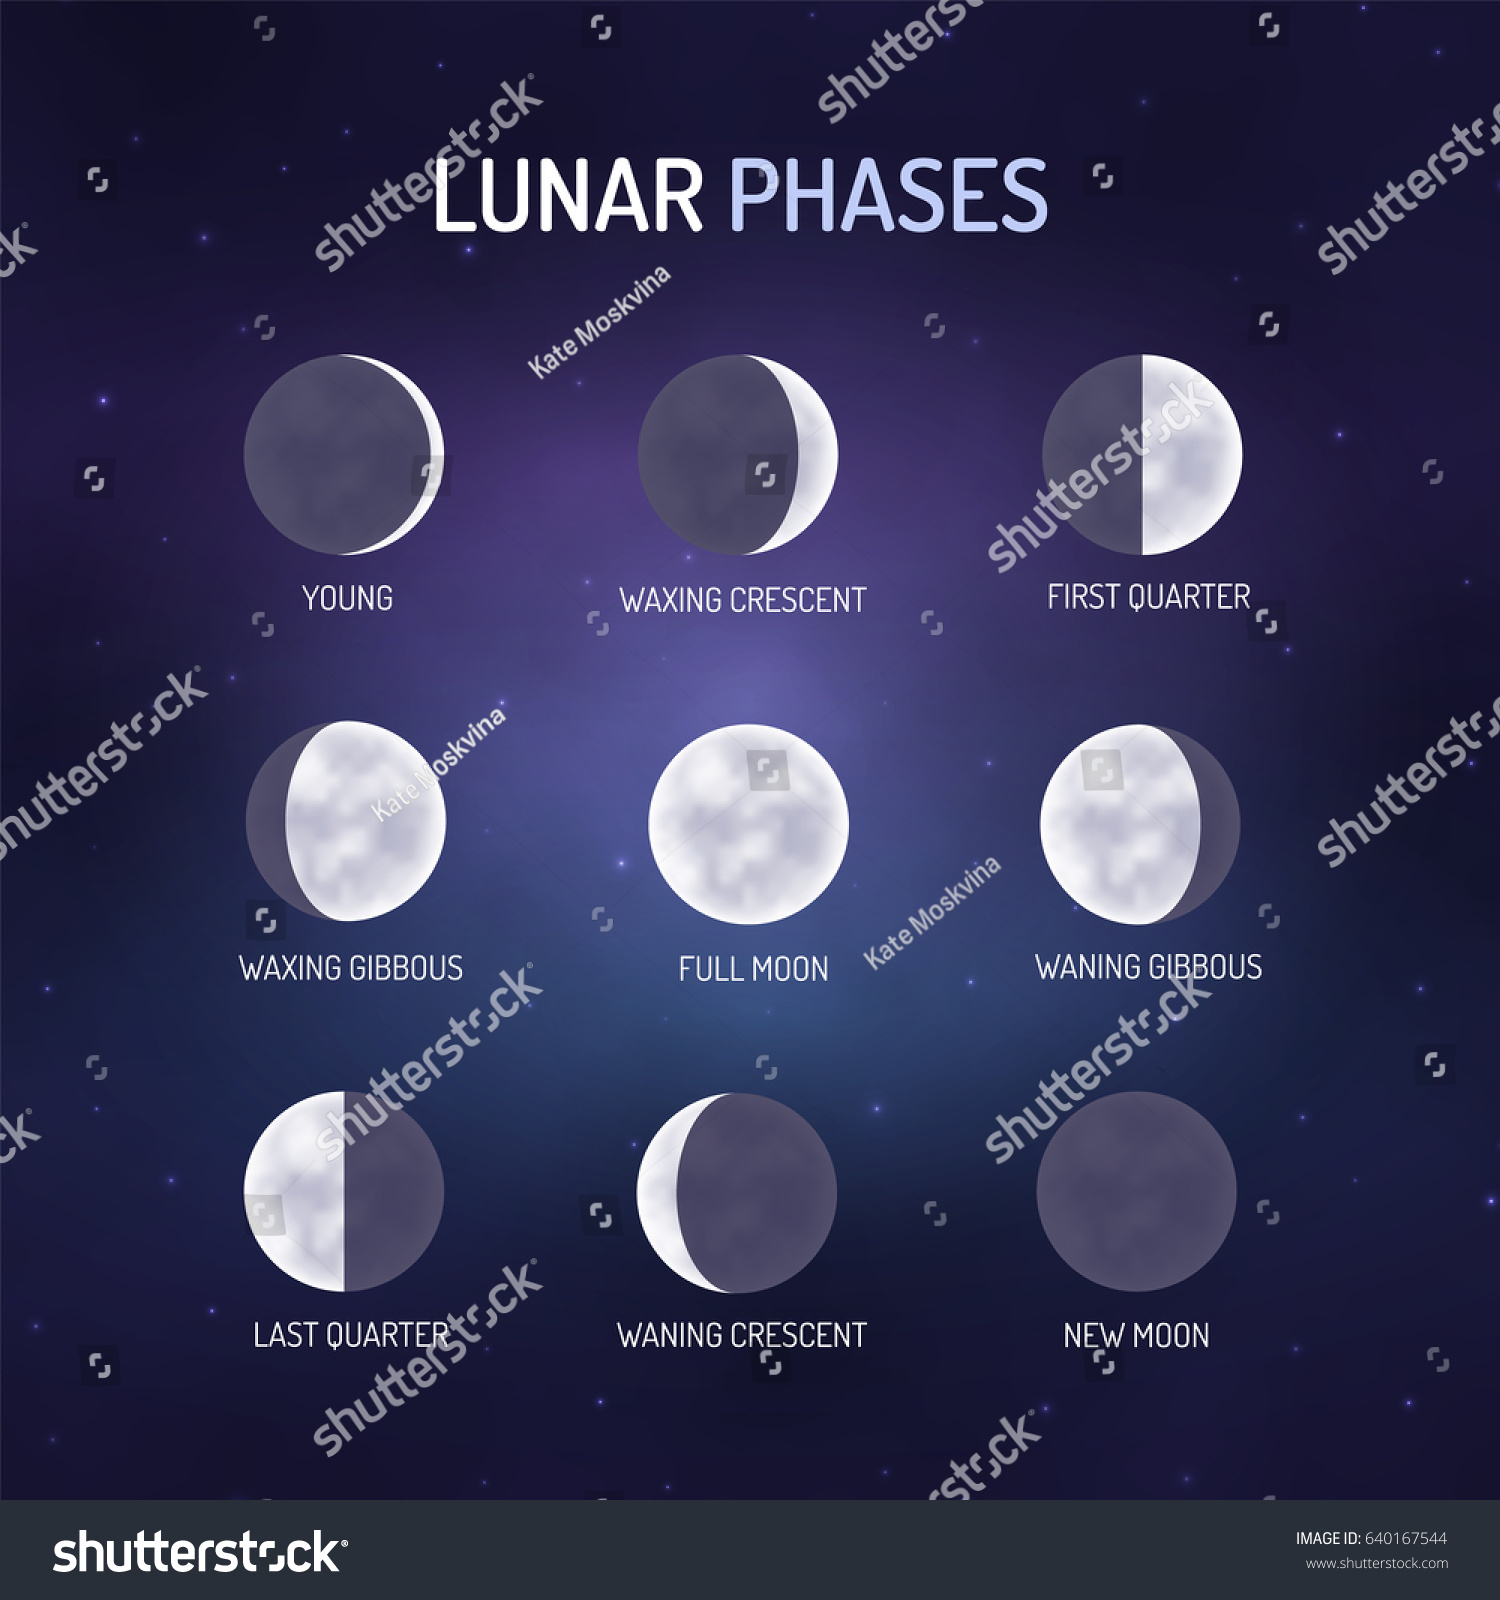 Lunar Phases Visual Teaching Material On Stock Vector Royalty Free Diagram Astronomy Illustration